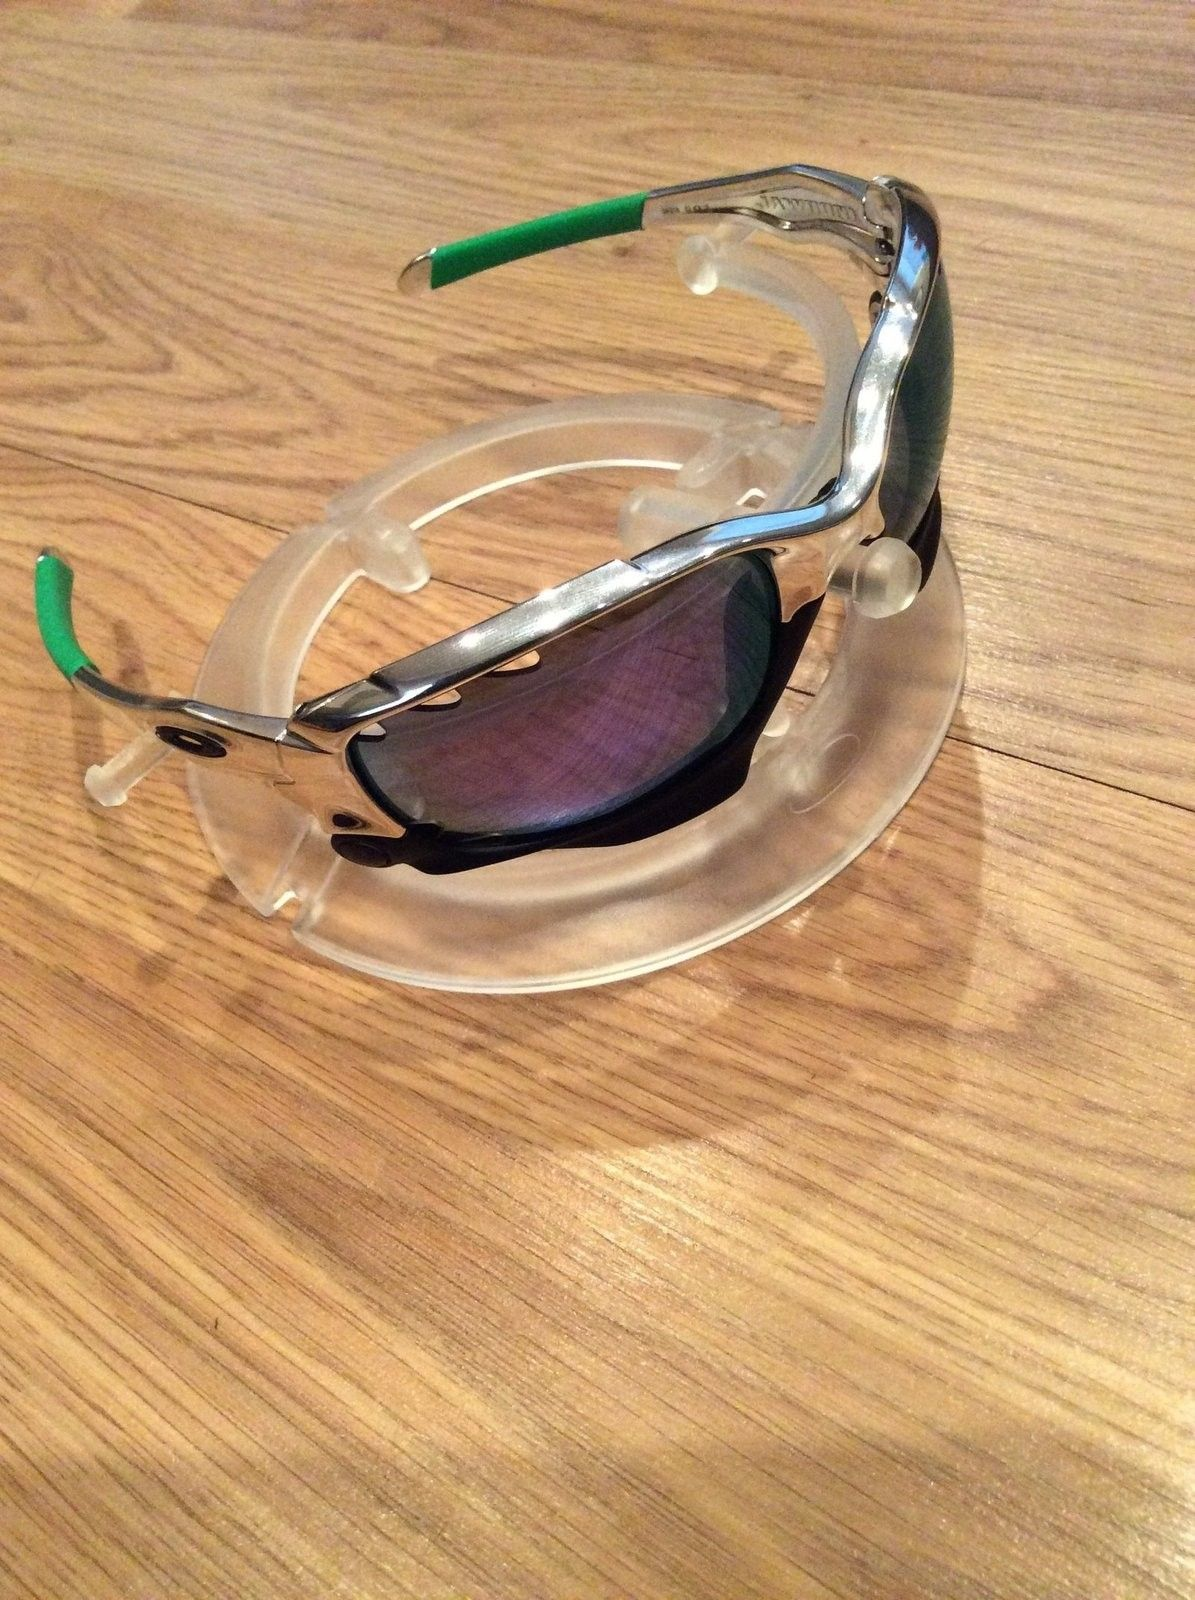 Oakley Stand Bundle $100 shipped - image.jpg